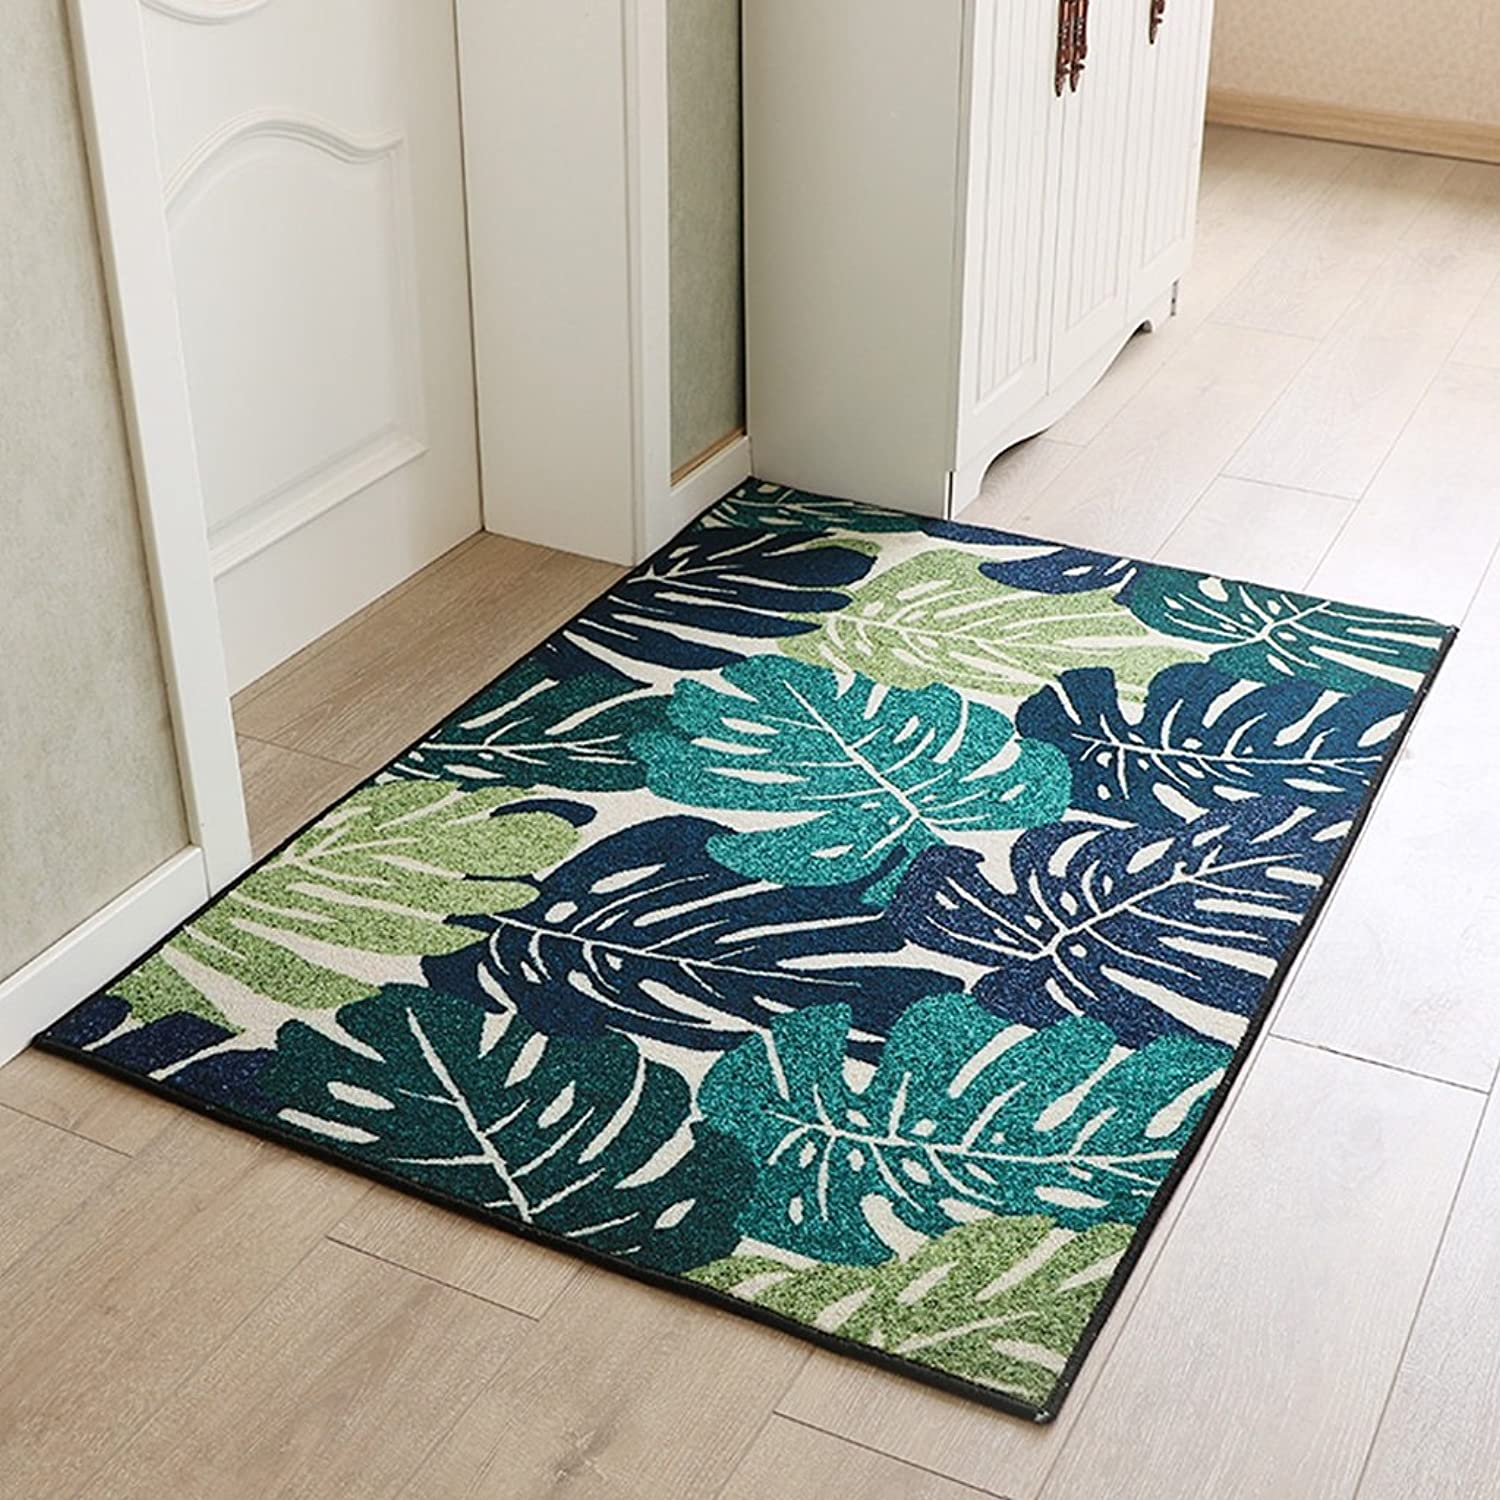 Door mats Home mats Carpets Small Fresh bluee Carpets Beside The Bed Stylish Non-Slip mats Foot-to-Door mats Bedroom Doormats Soft and Comfortable (color   Green, Size   90  120cm)